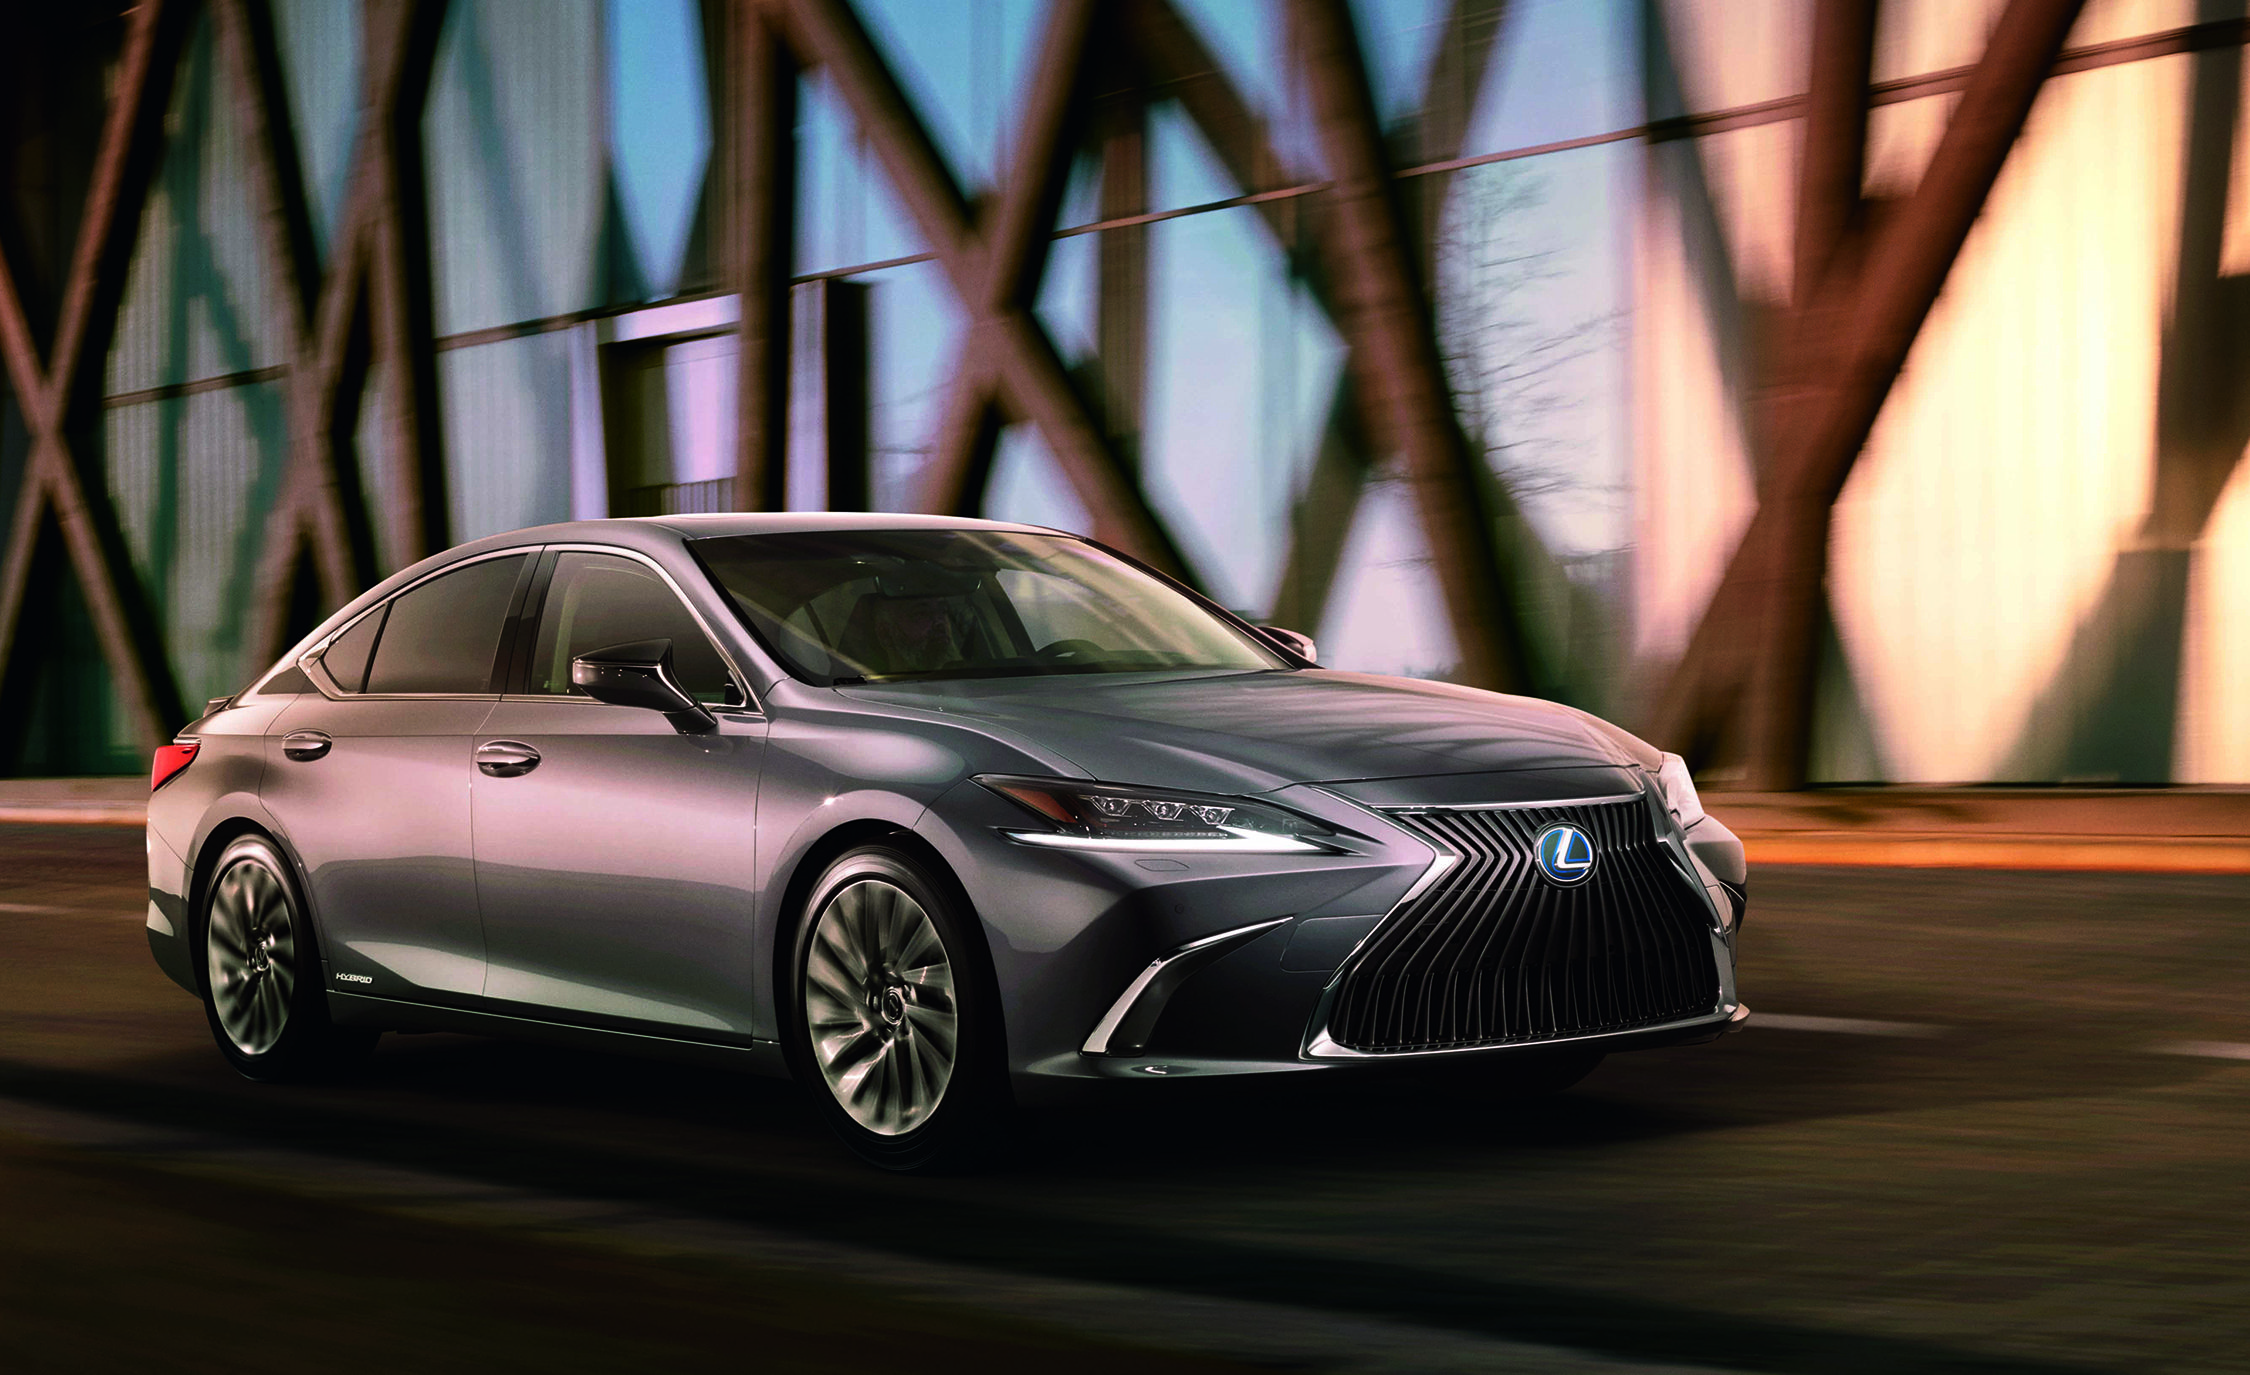 2019 Lexus Es Revealed In First Official Picture News Car And Driver